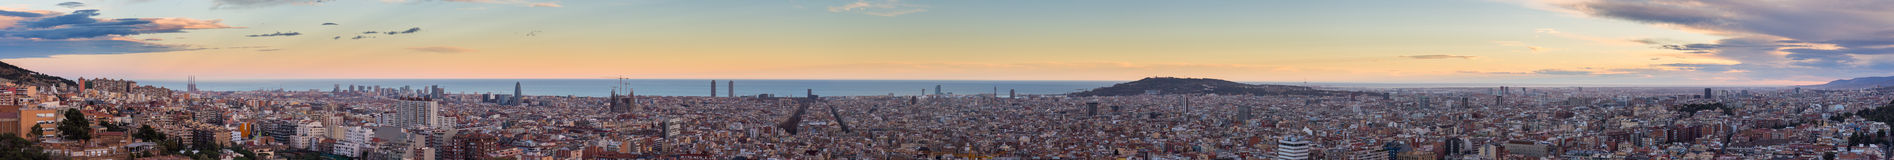 Panorama view of Barcelona from Park Guell in sunny day in winter. High resolution image. Spain Stock Image